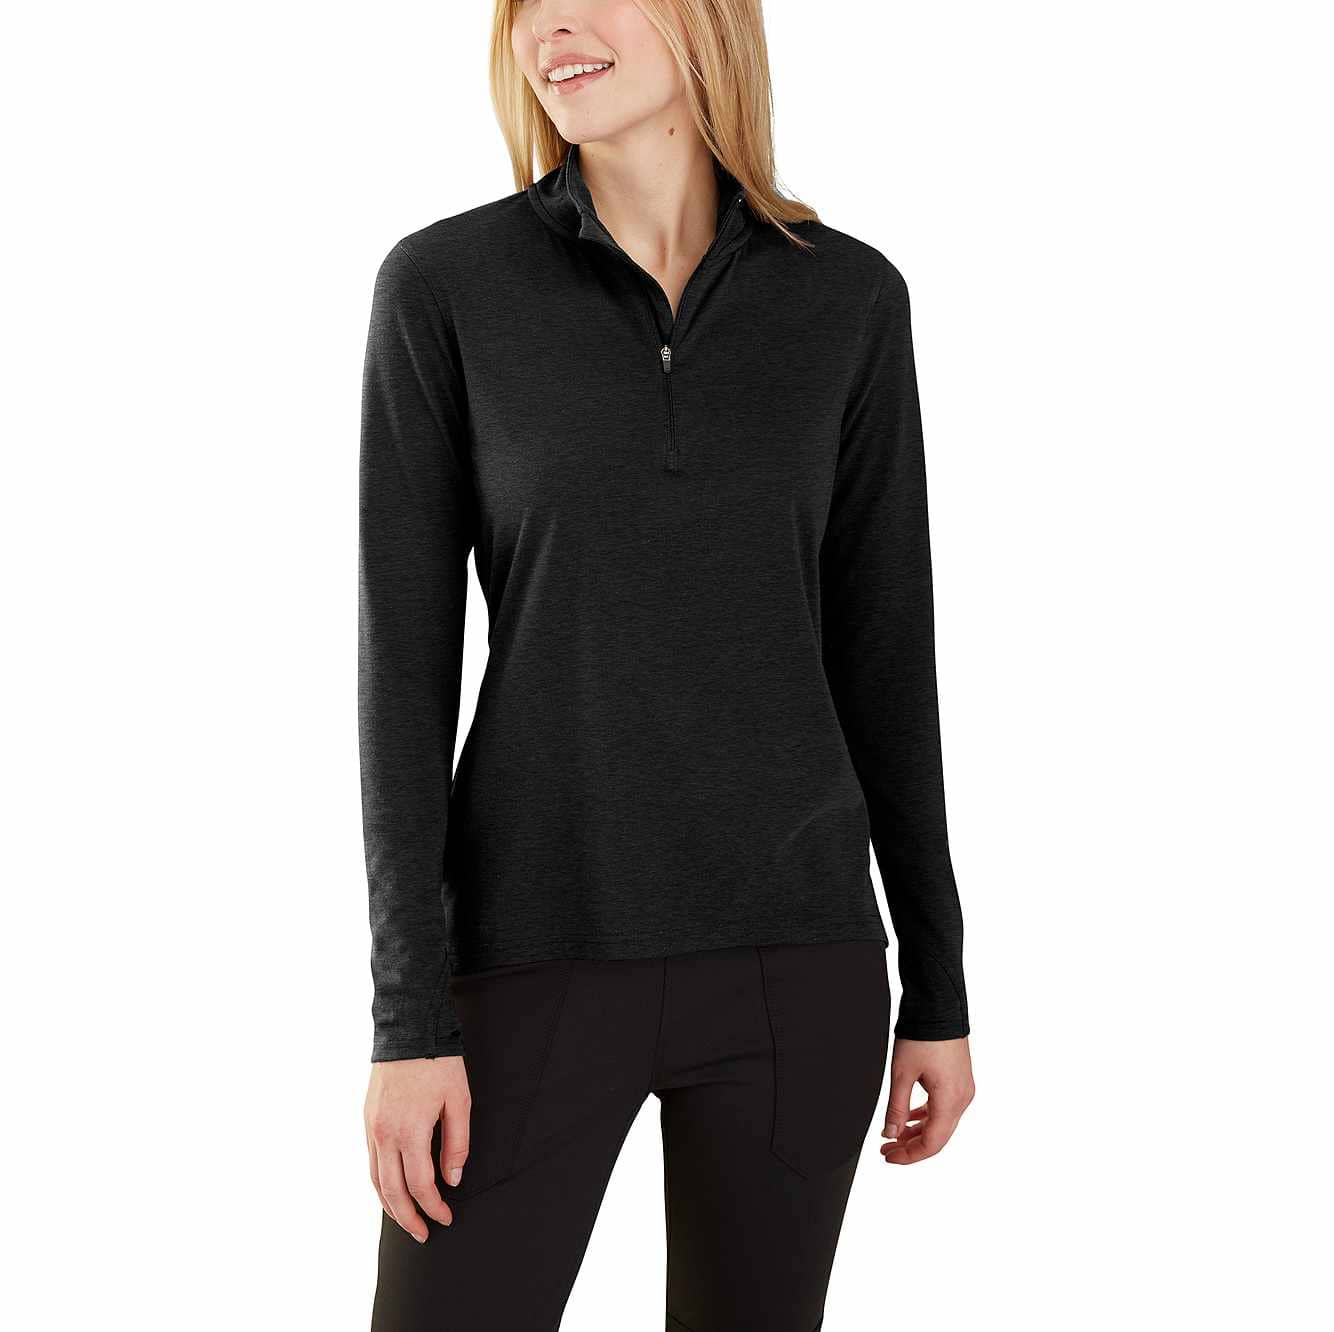 Picture of Carhartt Force® Delmont Quarter-Zip Shirt in Black Heather